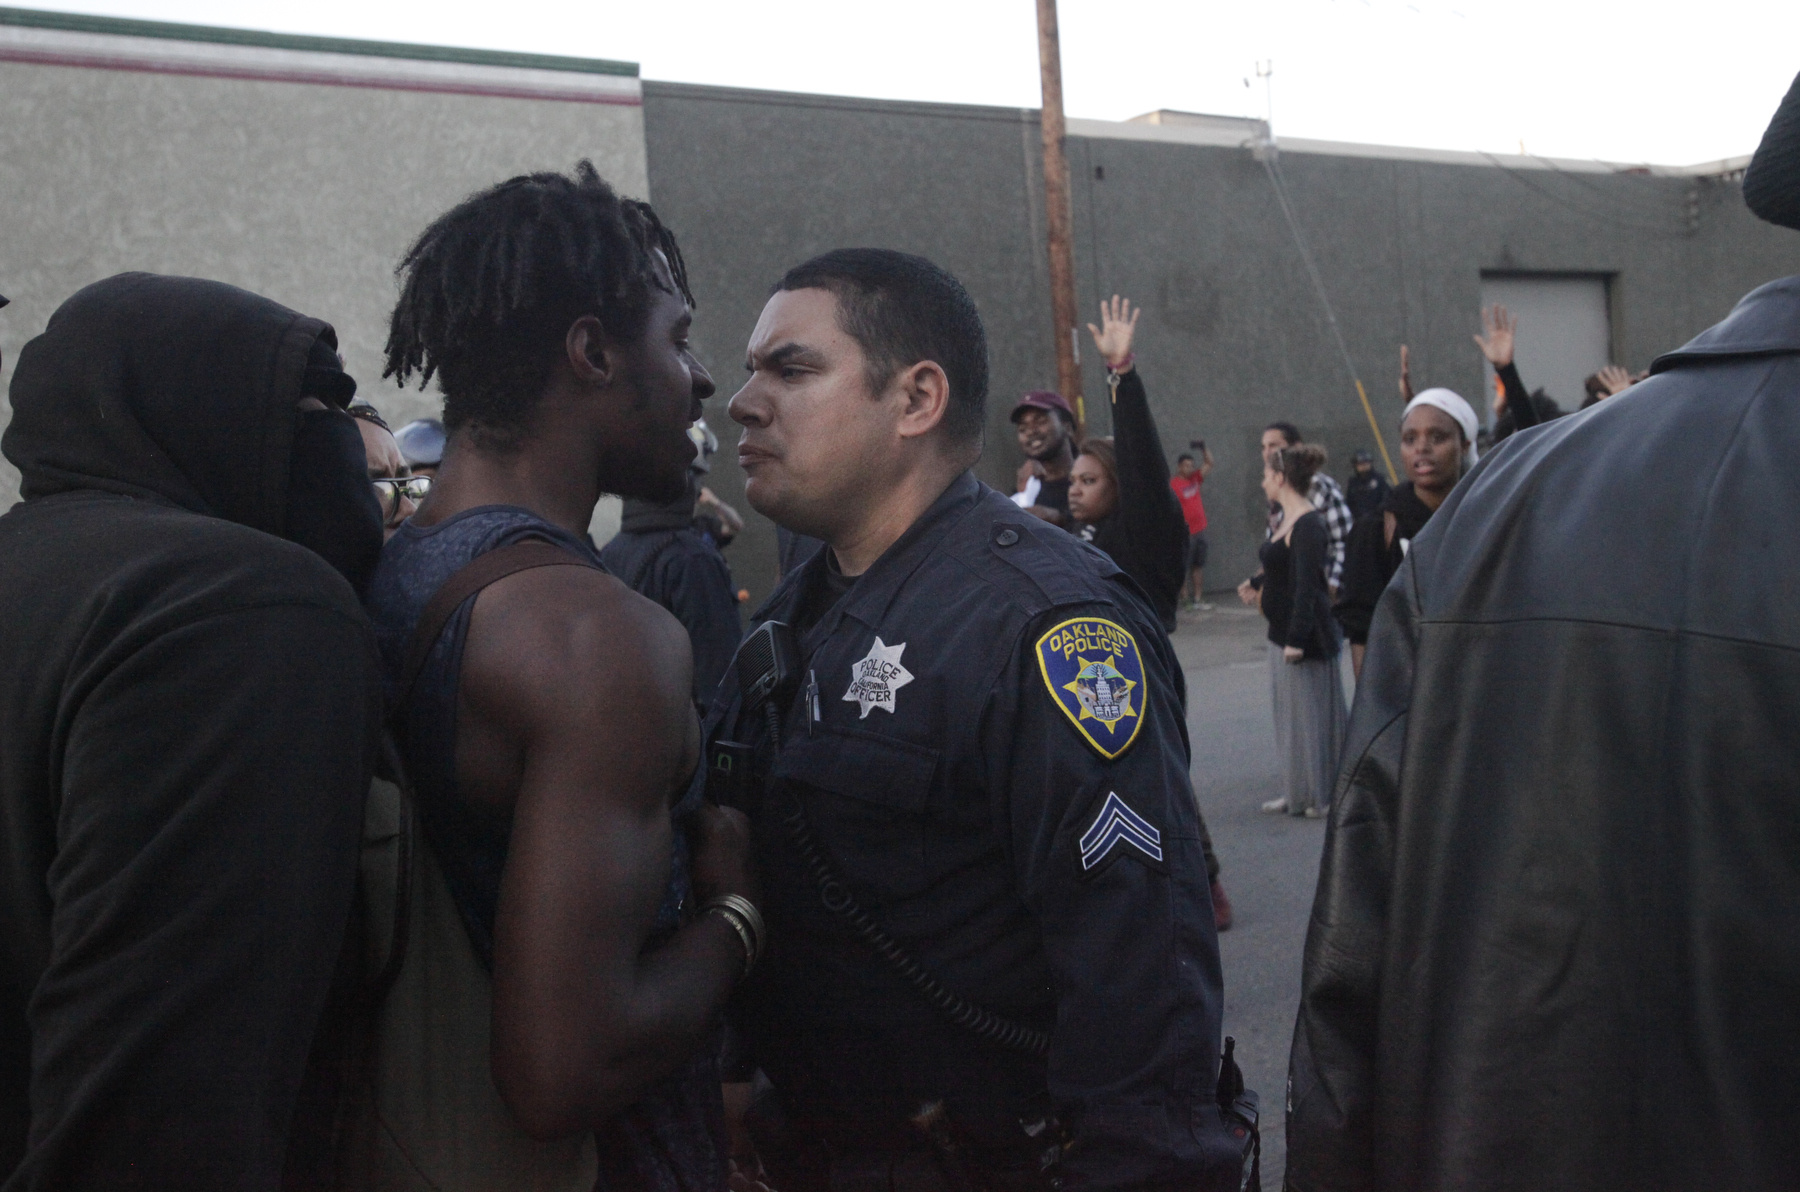 A police officer and a protester have a tense moment before a scuffle breaks out between a different protester and police officers near the port during an {quote}F the Police{quote} march held in solidarity with Ferguson, Mo., where there was a fatal shooting of an unarmed 18-year-old black man earlier in the week August 15, 2014 in Oakland, Calif.